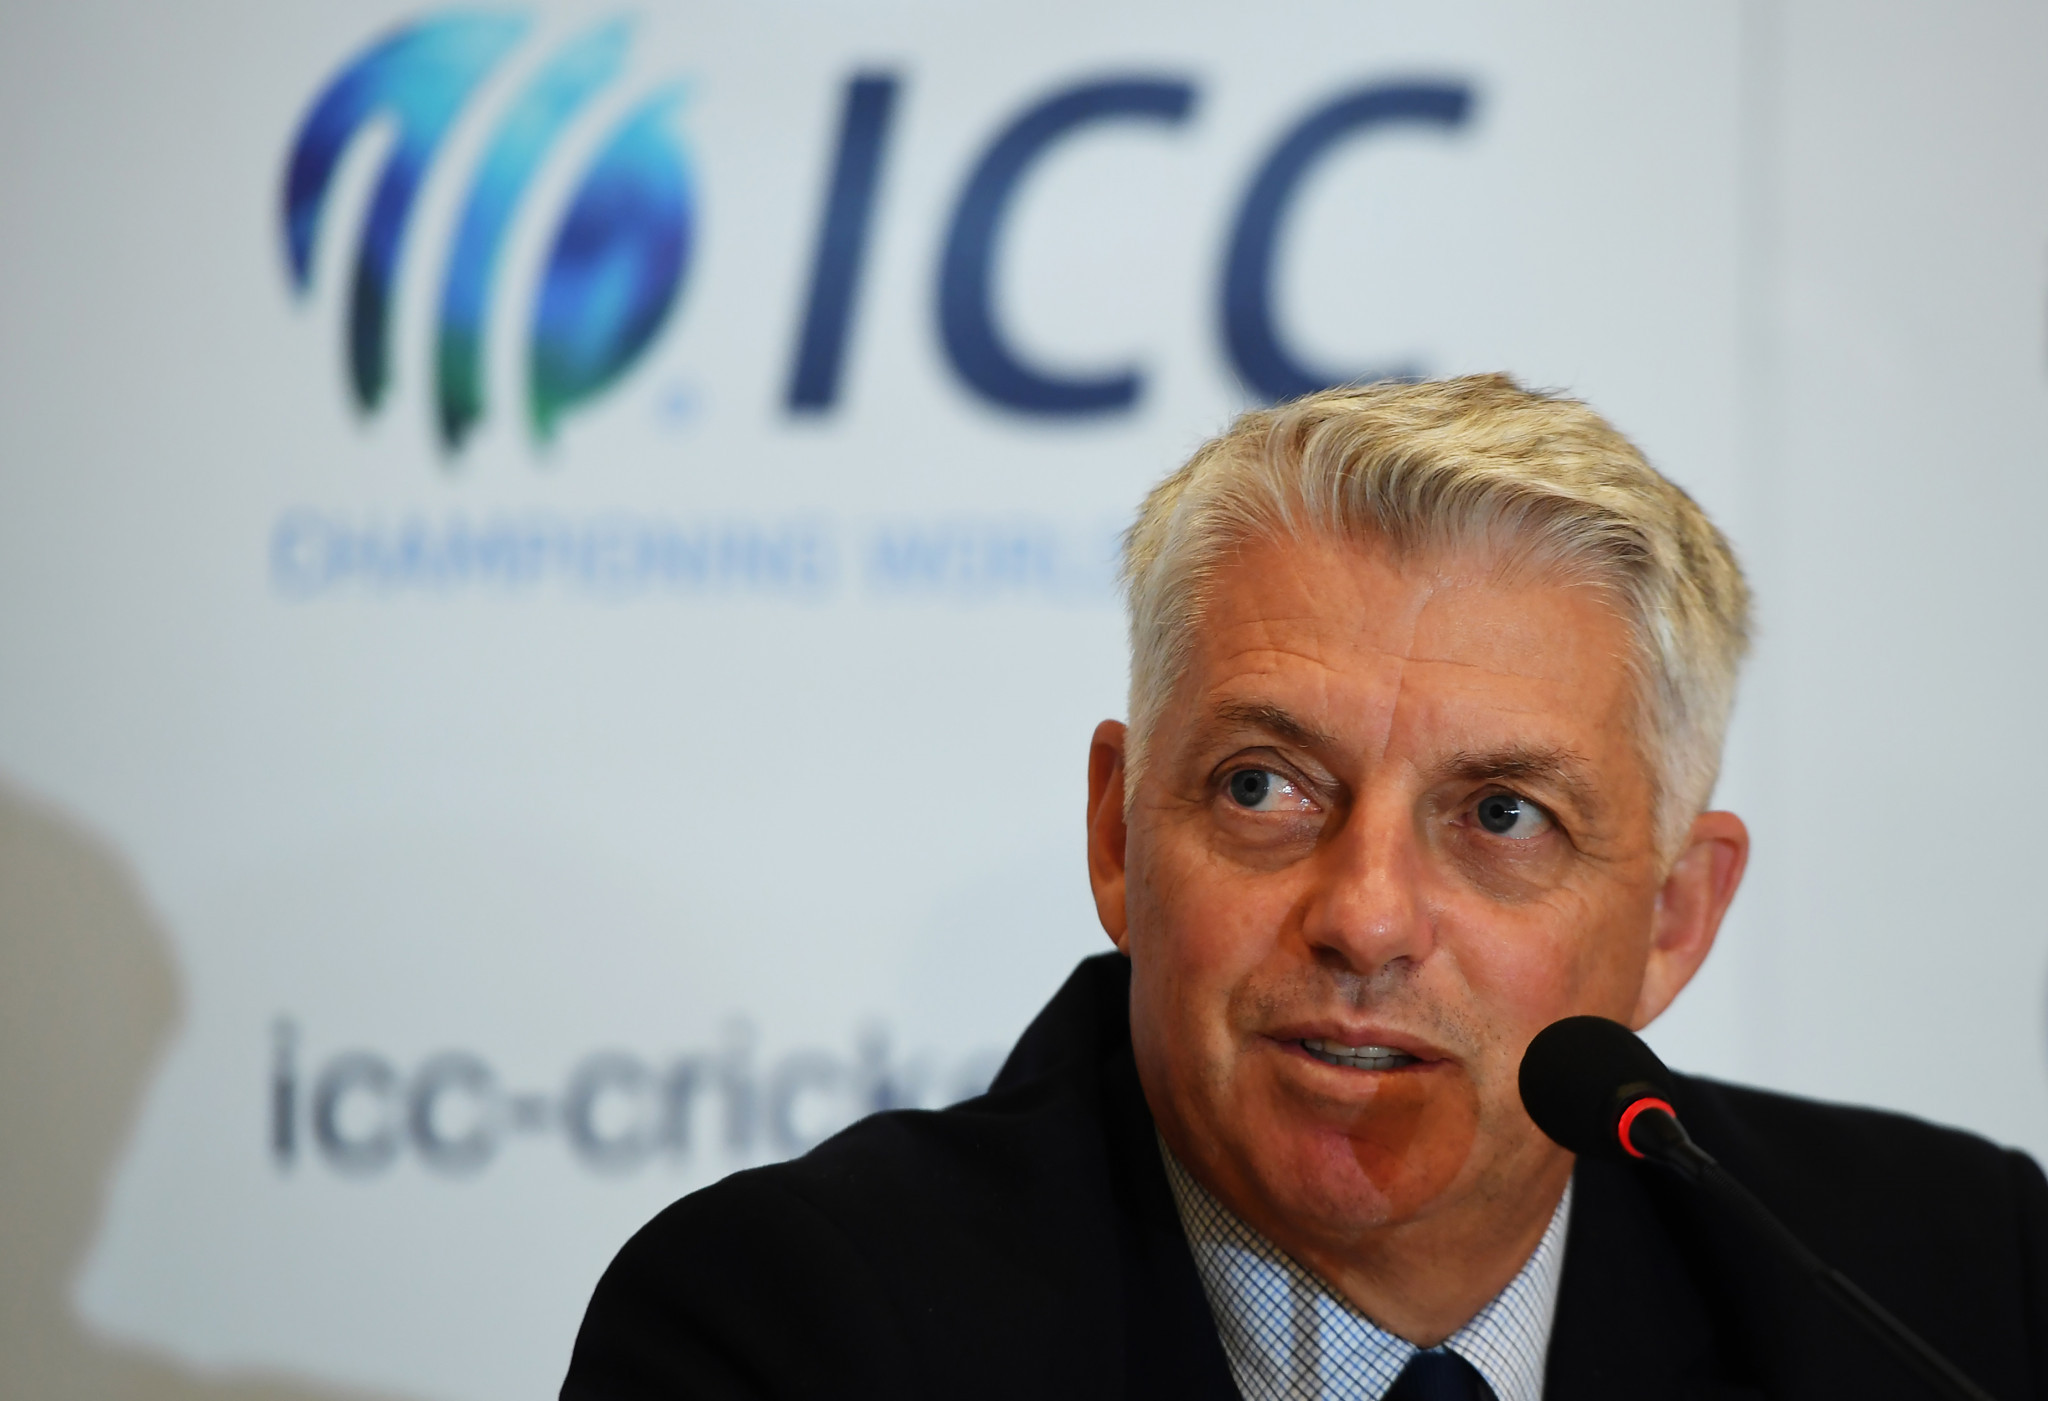 Dave Richardson is convinced the BCCI can be persuaded to support cricket's Olympic bid ©Getty Images